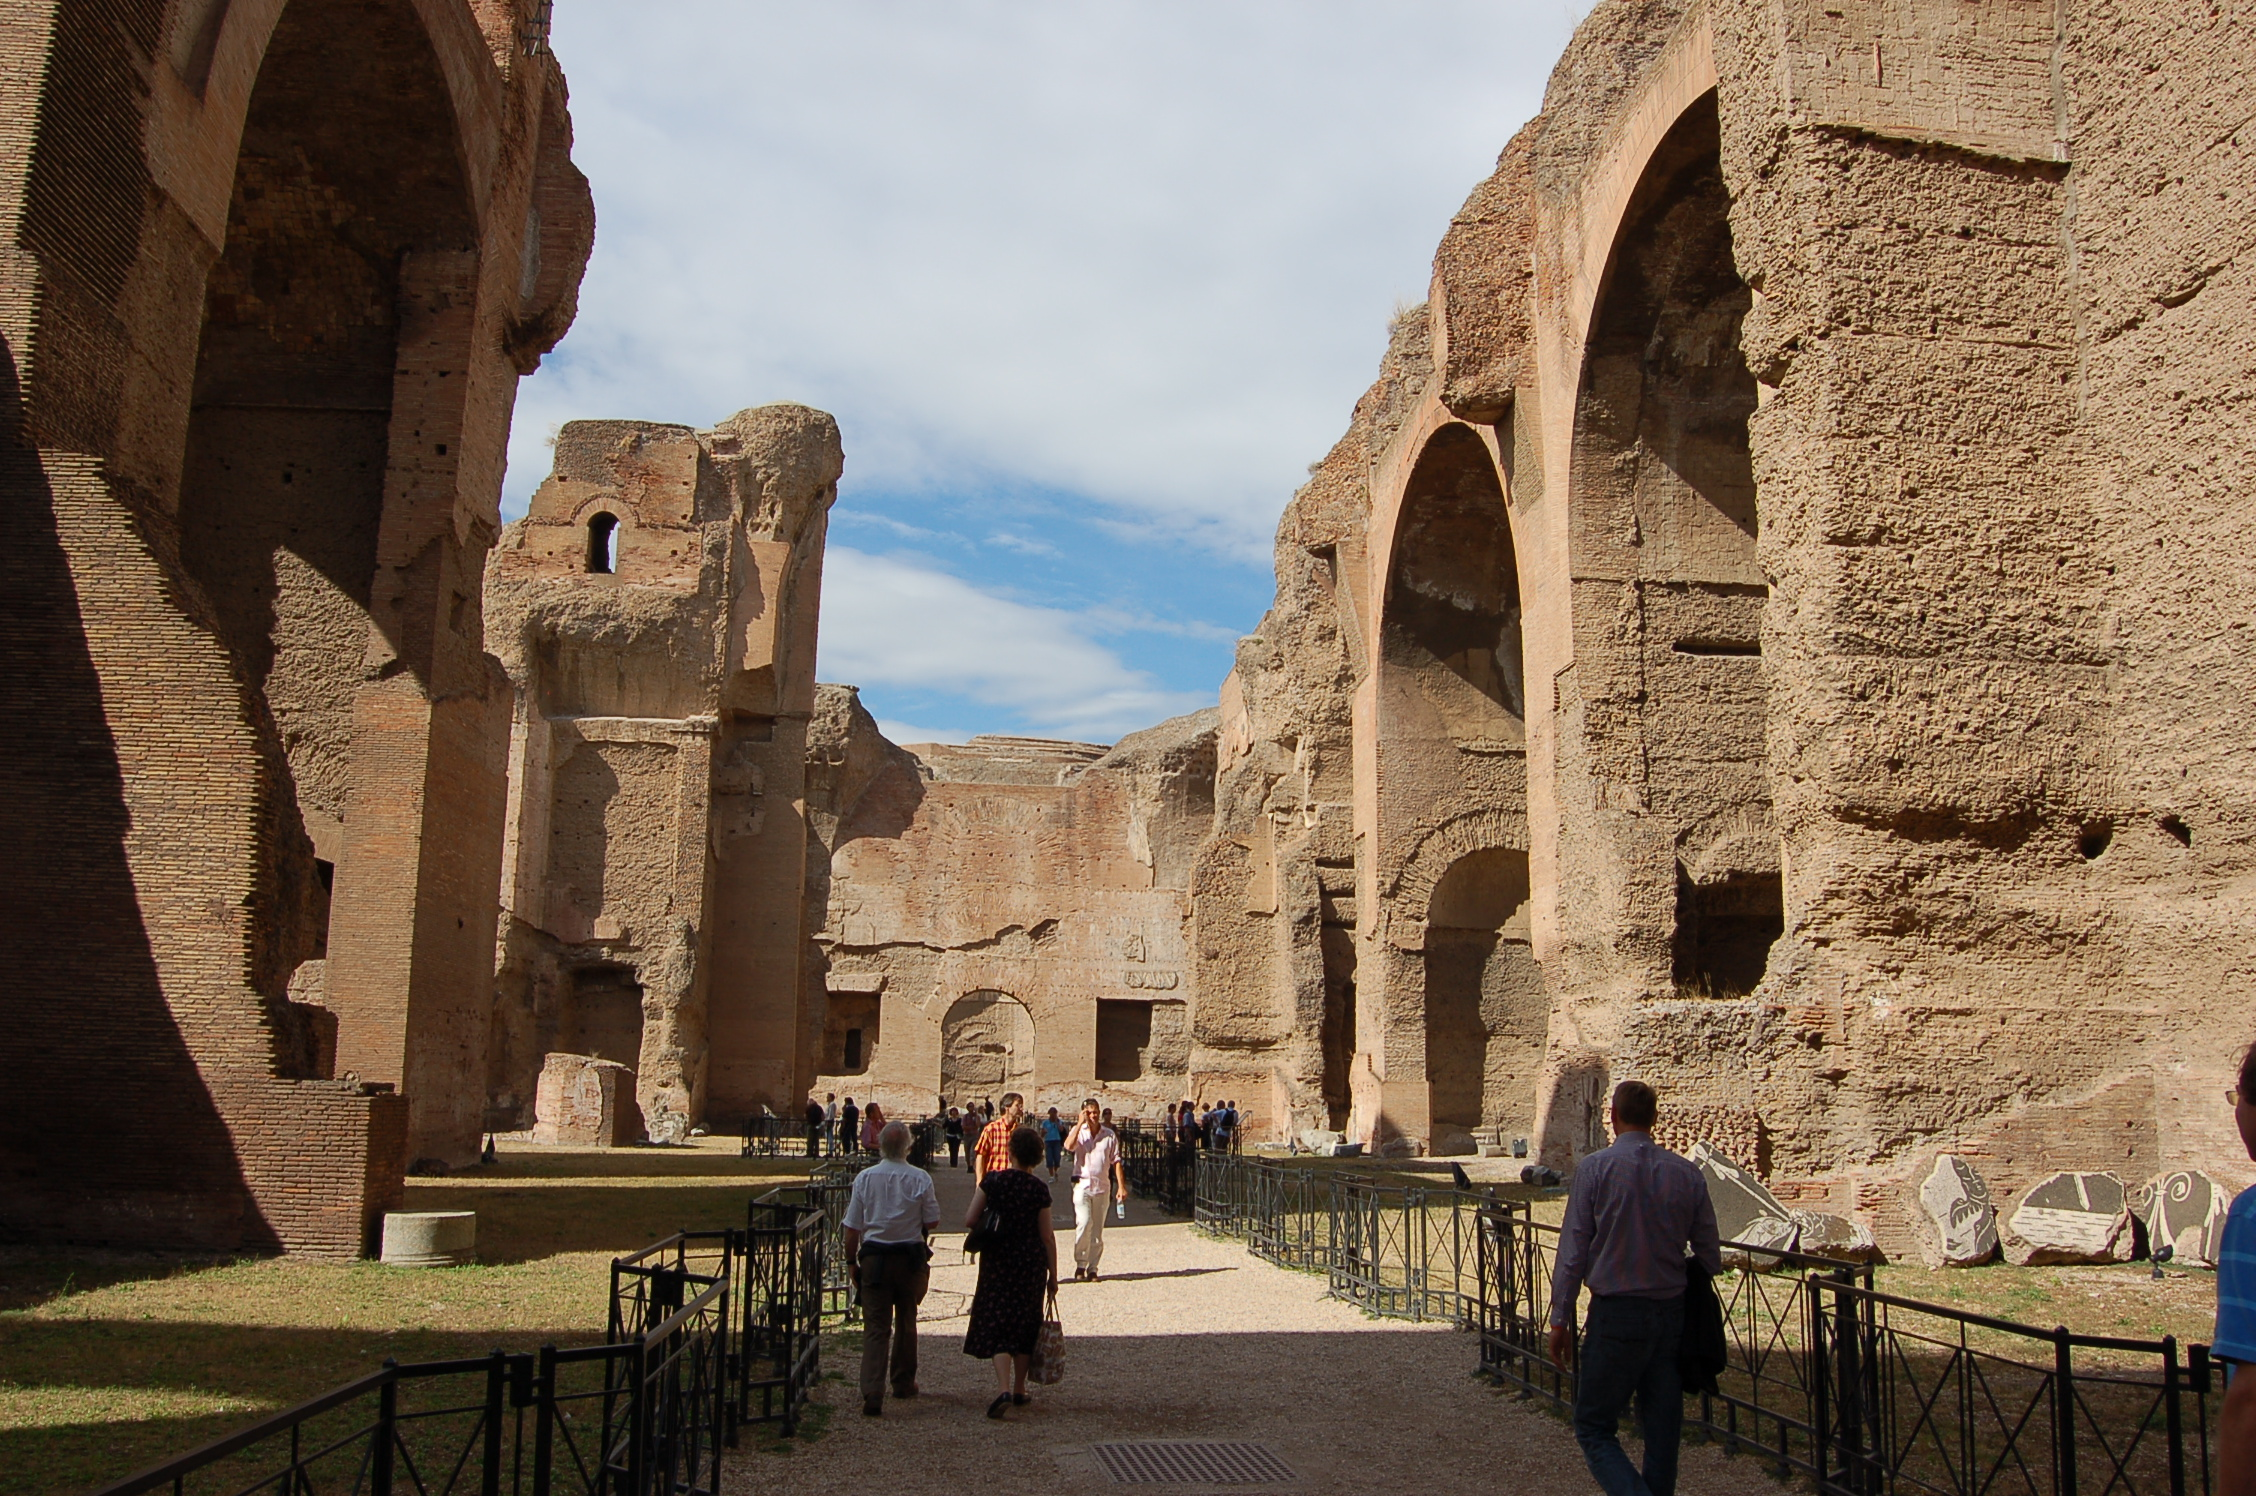 The monumental baths of Caracalla